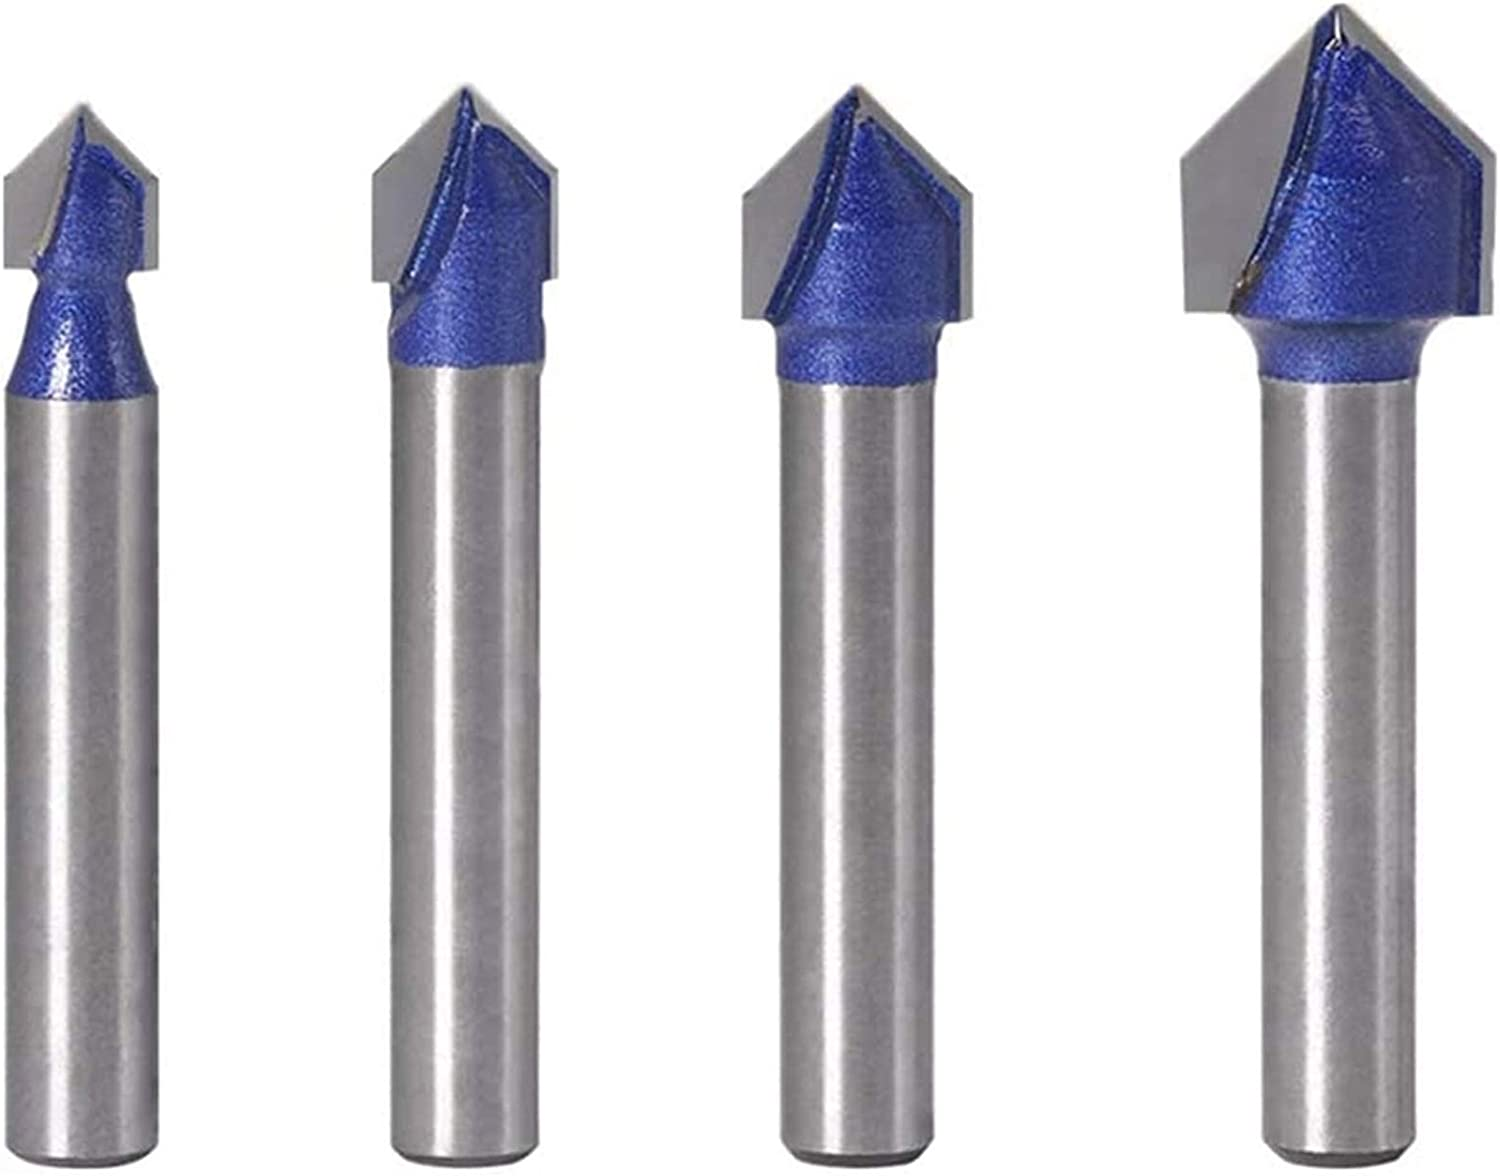 YIFENGHUI Hot 4Pcs Direct stock discount 1 4 Inch Shank Groove Router Bit Degree V Max 53% OFF 90